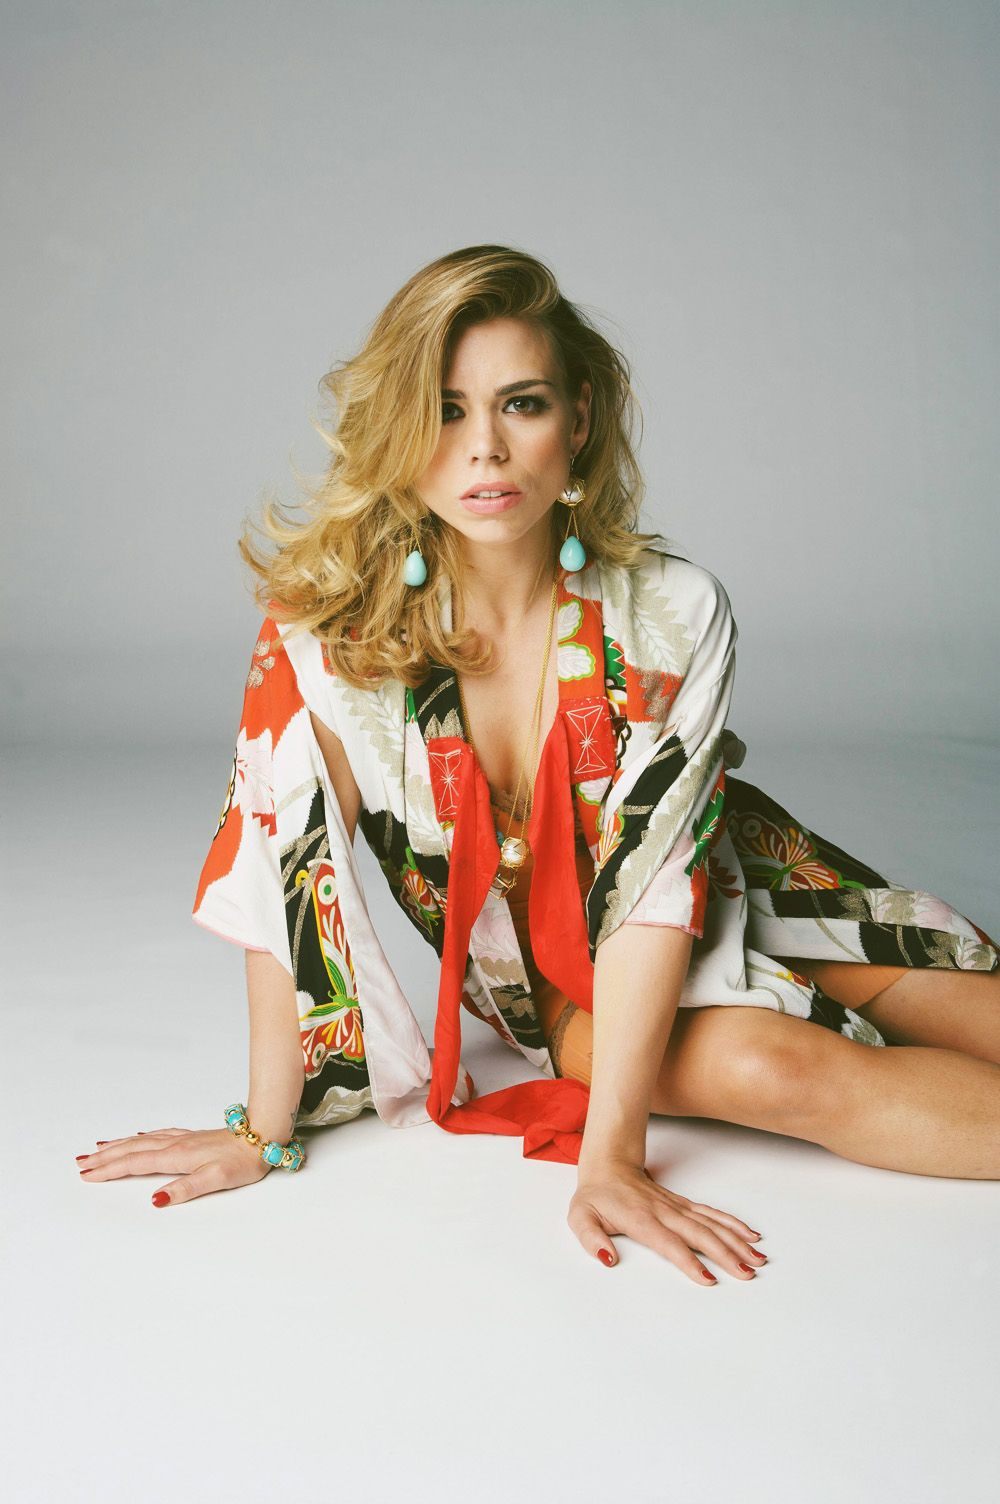 Pictures Billie Piper nudes (26 photo), Pussy, Cleavage, Boobs, butt 2017